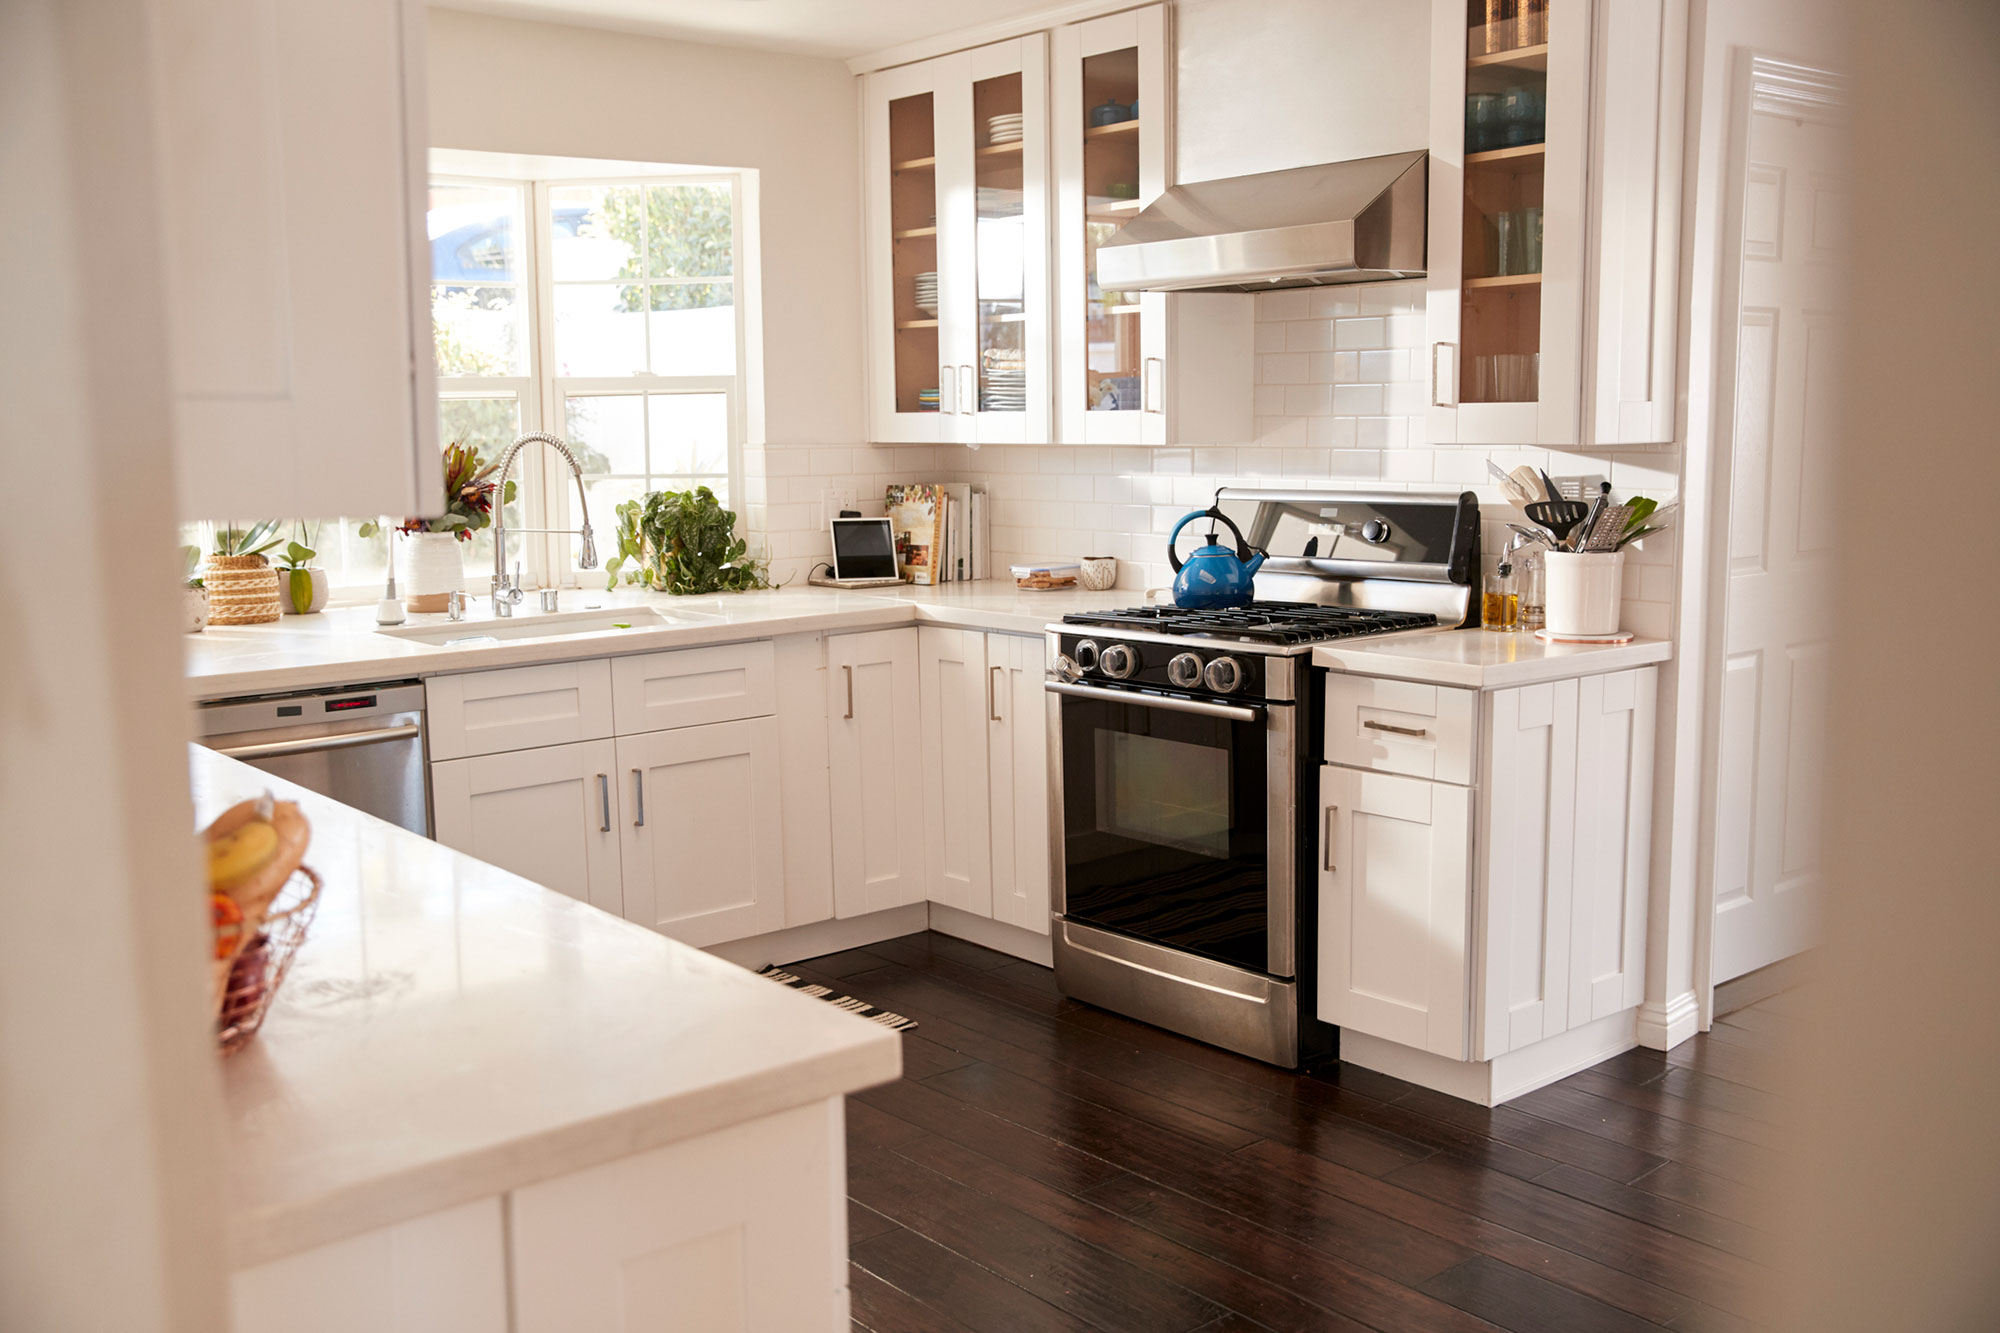 U-Shaped Kitchen 1 - Mihalko's General Contracting Kitchens